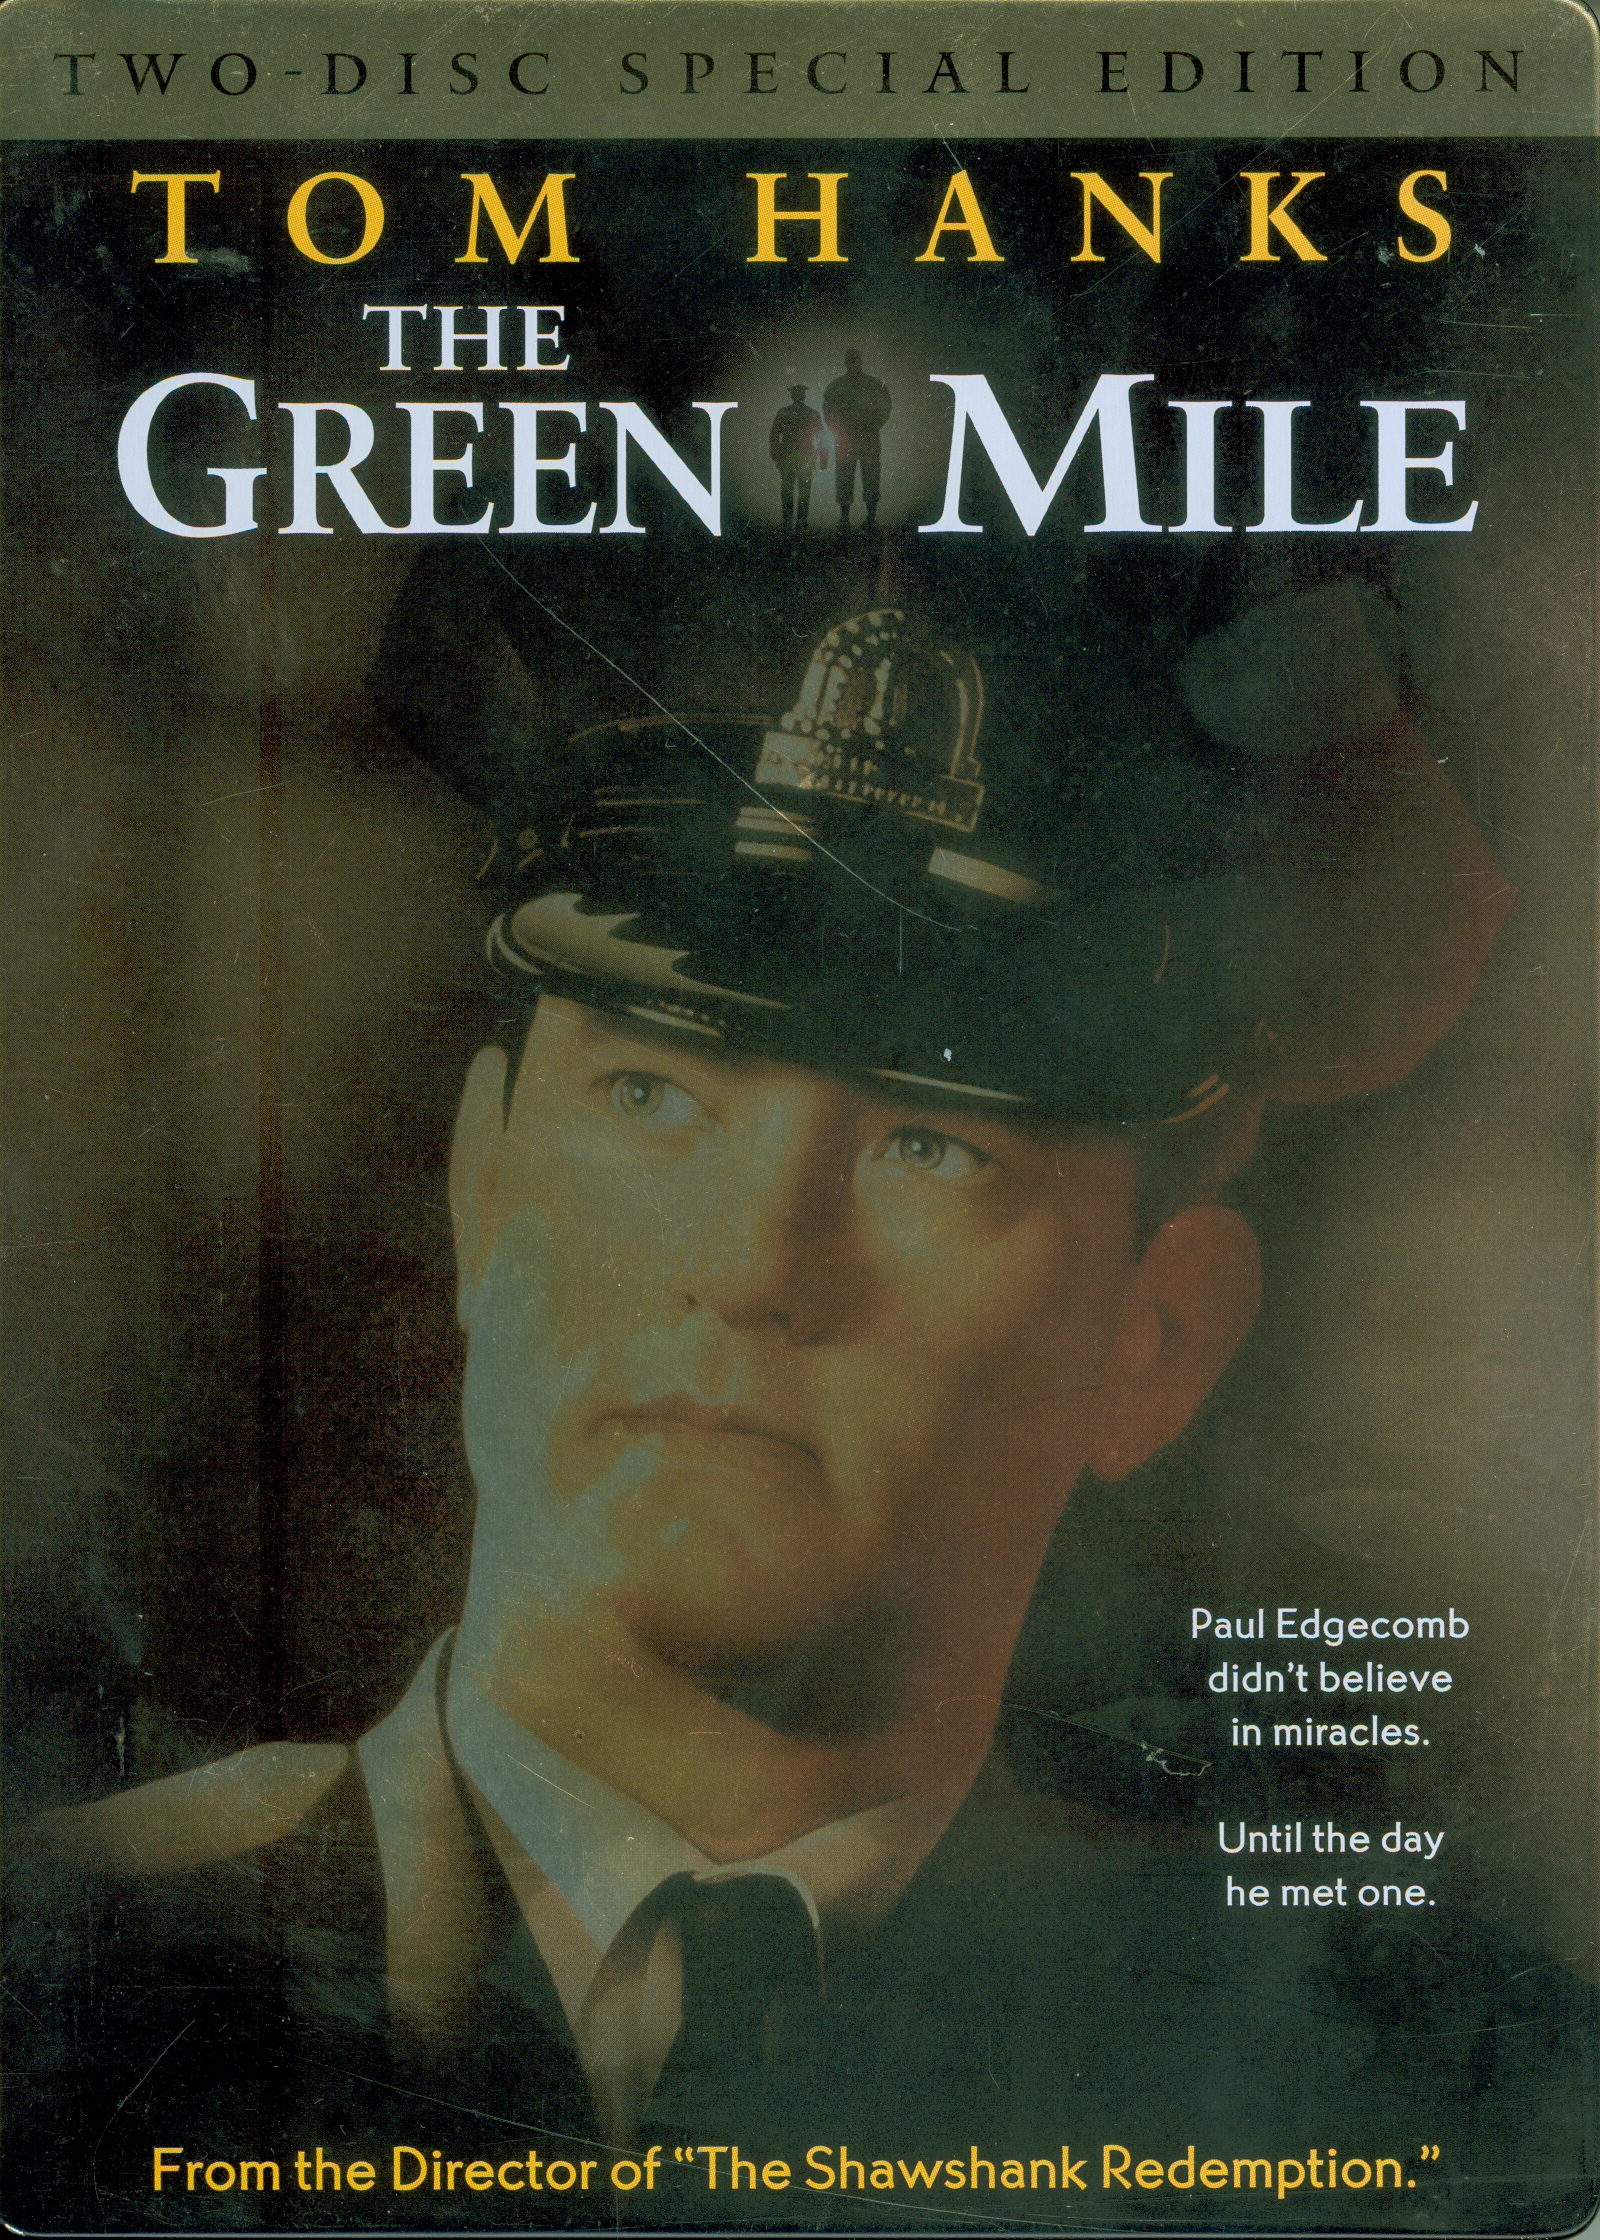 The green mile[videorecording] /Warner Bros. Pictures; [presented by] Castle Rock Entertainment ; a Darkwoods presentation ; written for the screen and directed by Frank Darabont ; produced by David Valdes, Frank Darabont||ปาฏิหาริย์แดนประหาร